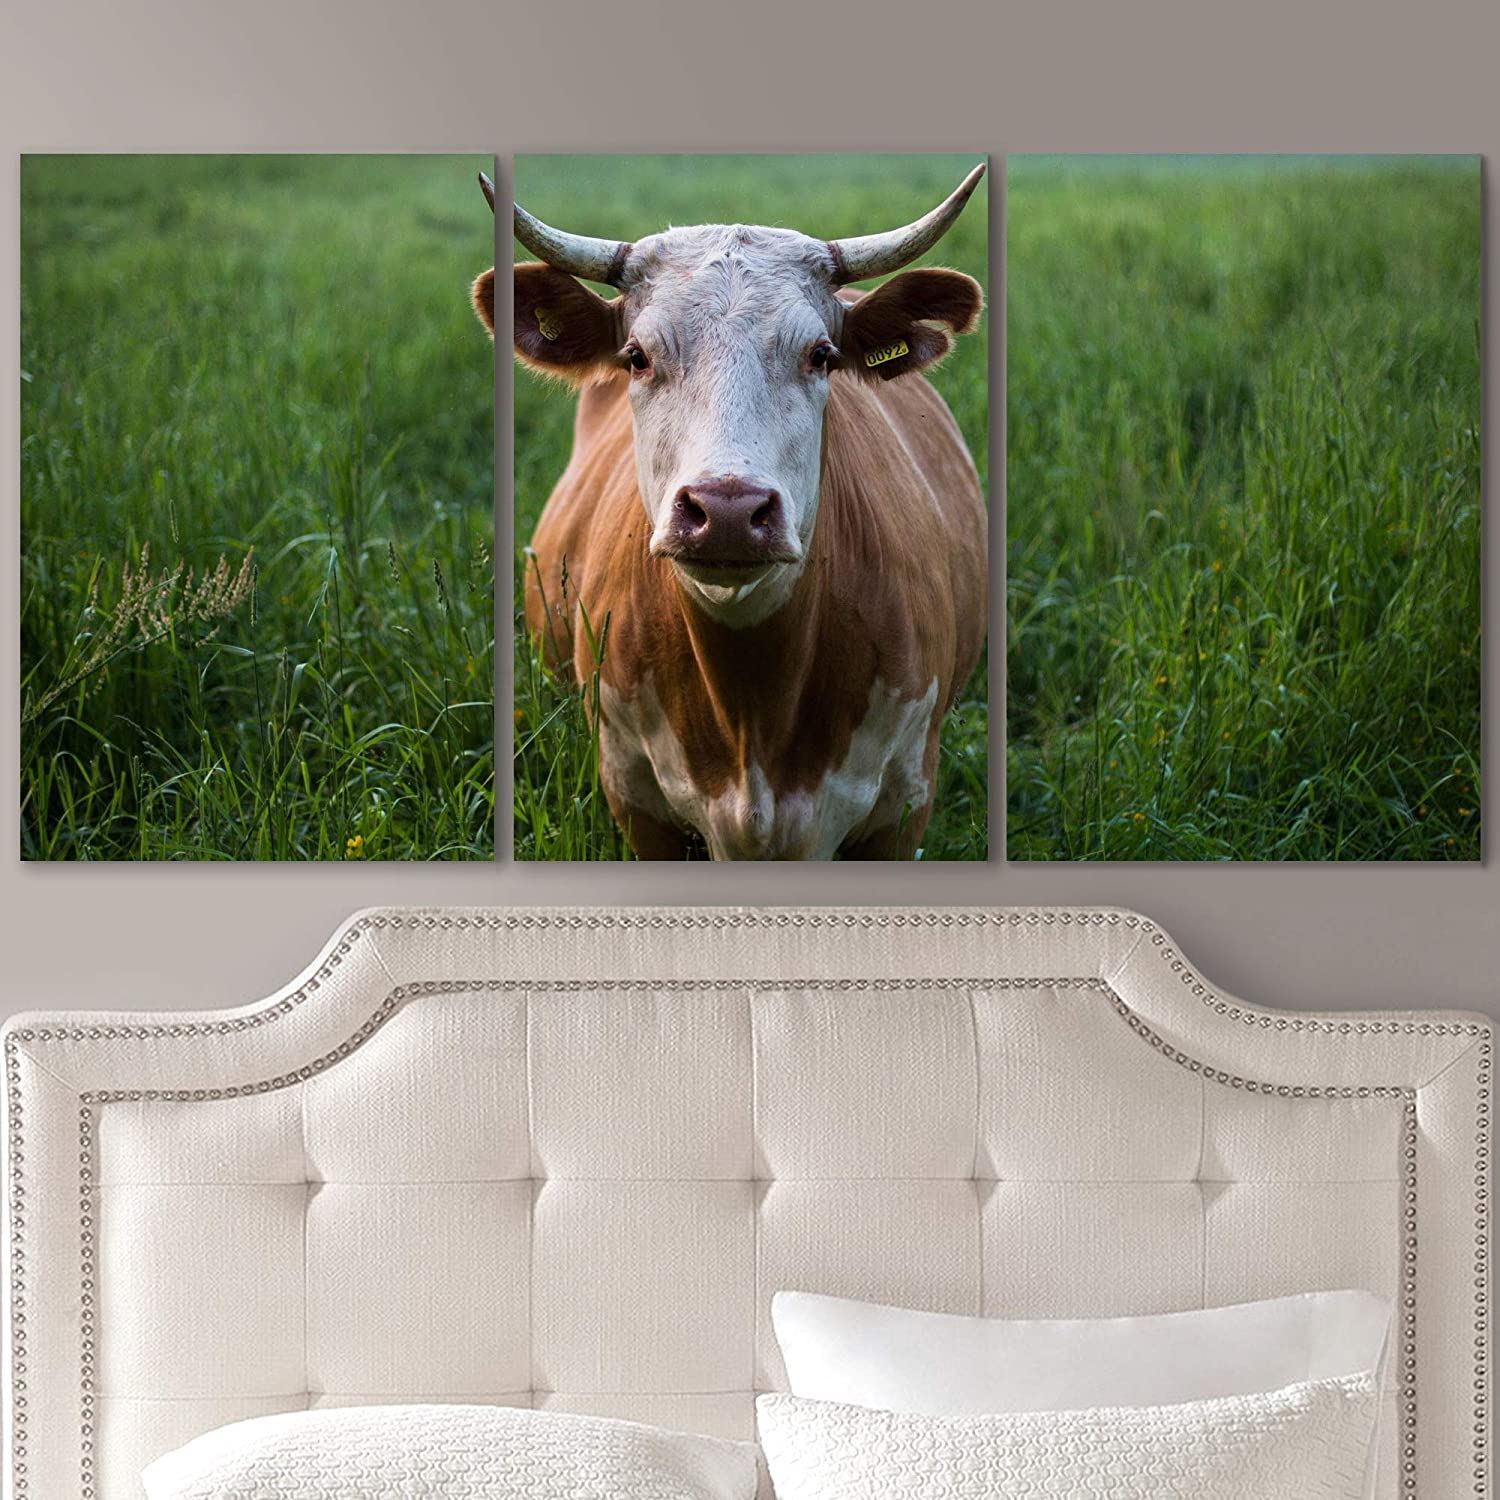 Limited time cheap sale SIGNLEADER Cow in The Wild Wall Canvas for Ho Art Animals gift Prints